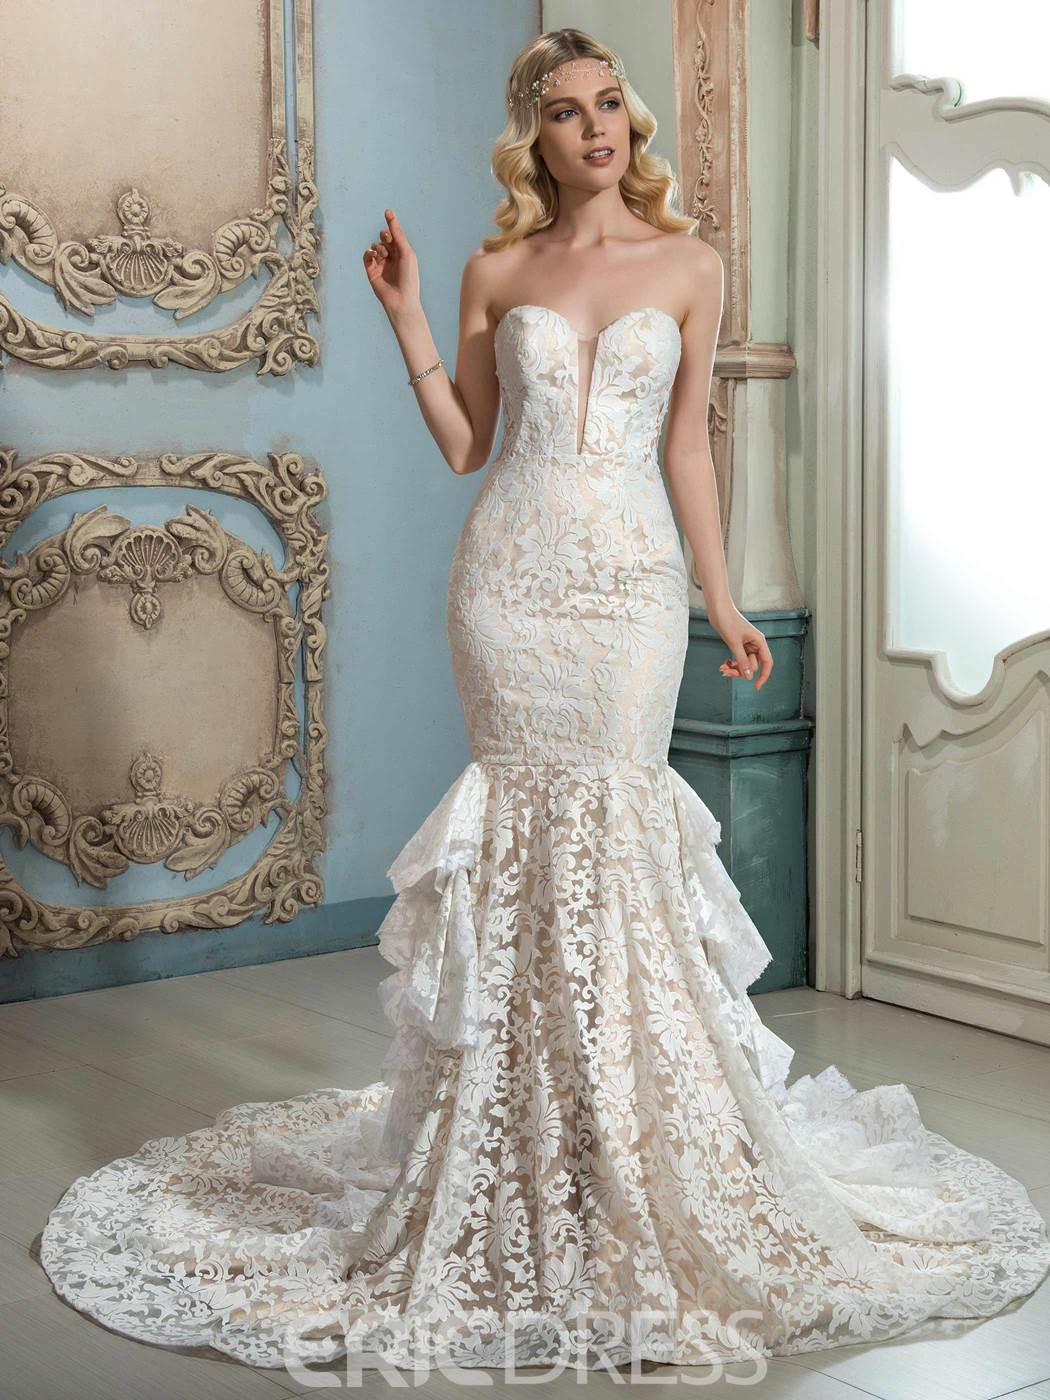 Ericdress Amazing Sweetheart Mermaid Lace Wedding Dress 12162085 ...